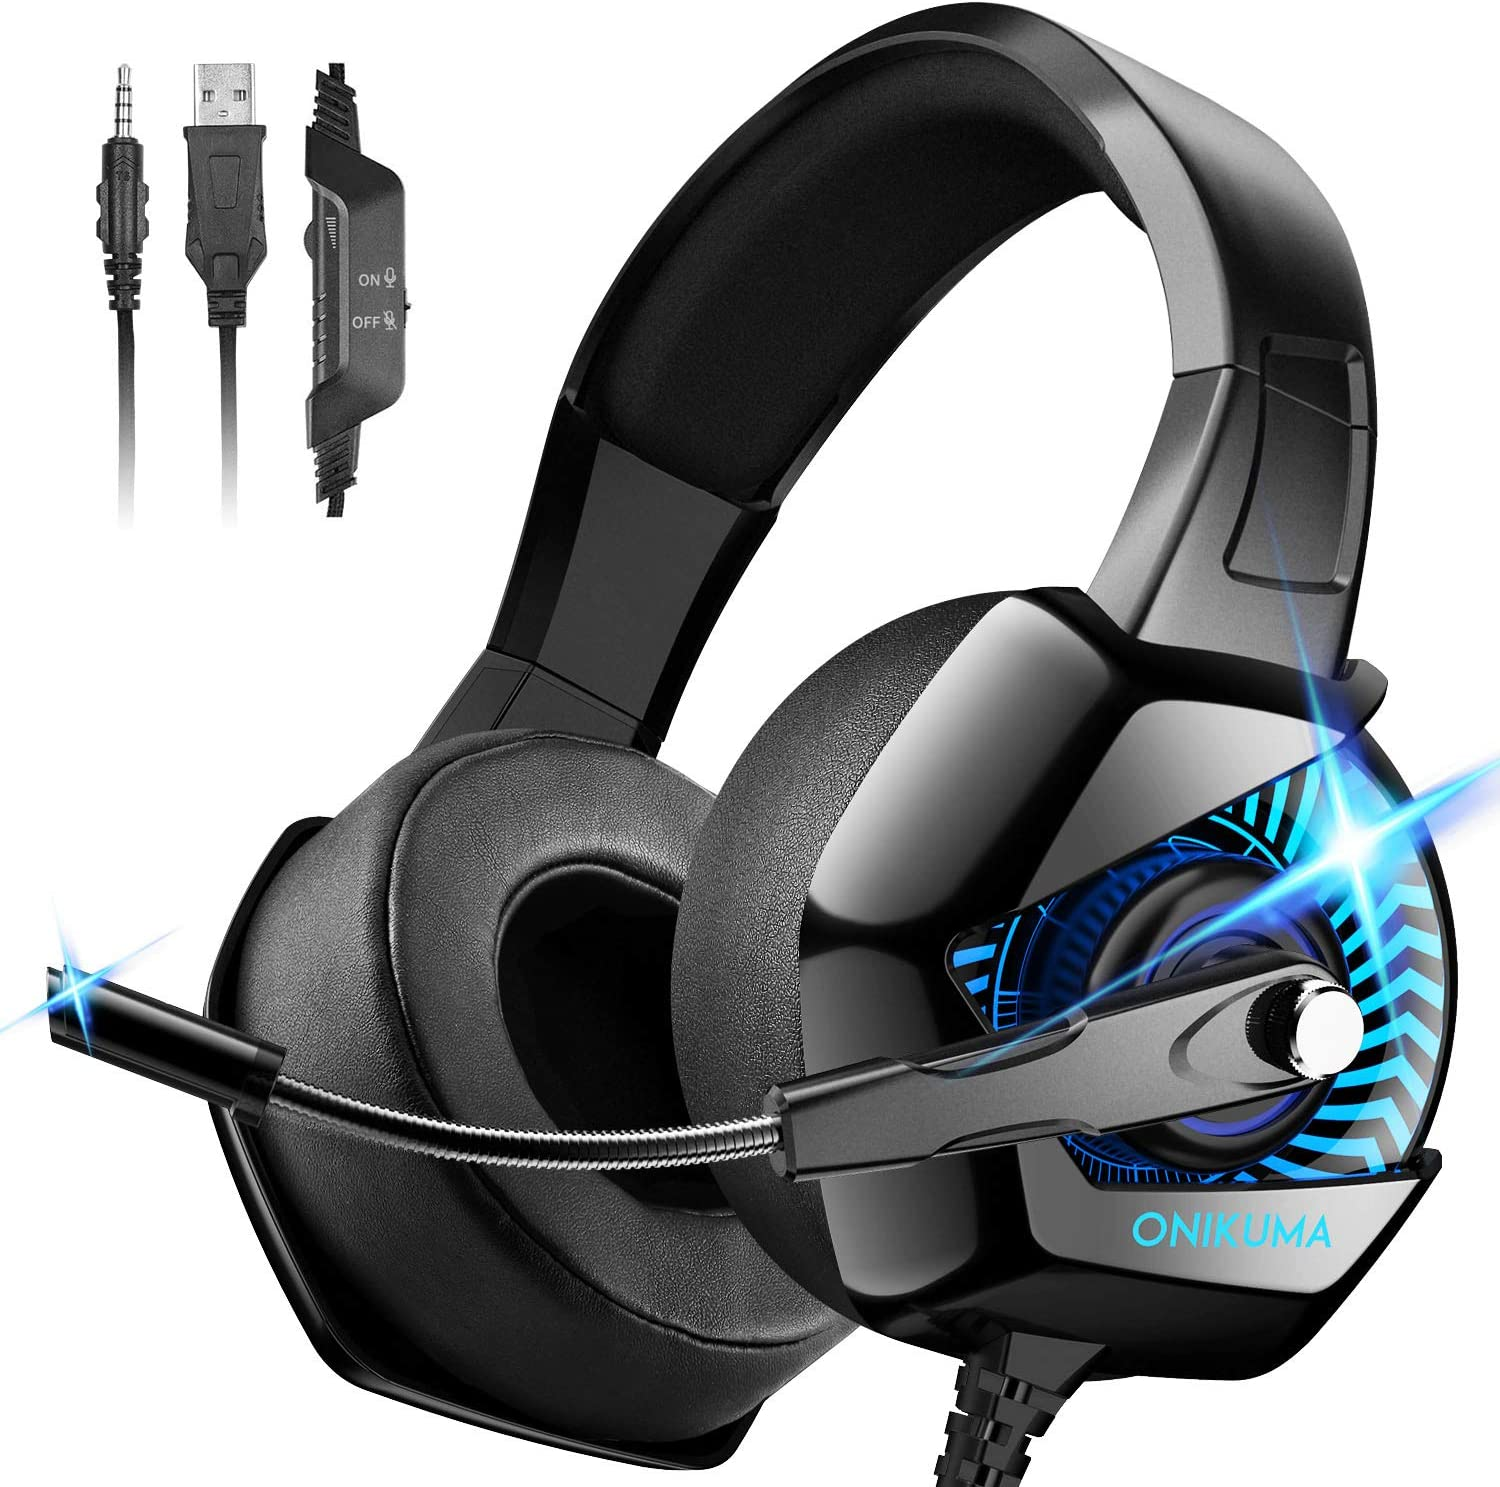 Amazon Com Onikuma Gaming Headset Ps4 Headset With Mic 7 1 Surround Sound Rgb Led Light Gaming Headphones Pc Headset With Noise Canceling For Ps4 Pc Mac Super Nintendo Xbox One Adapter Not Included Computers